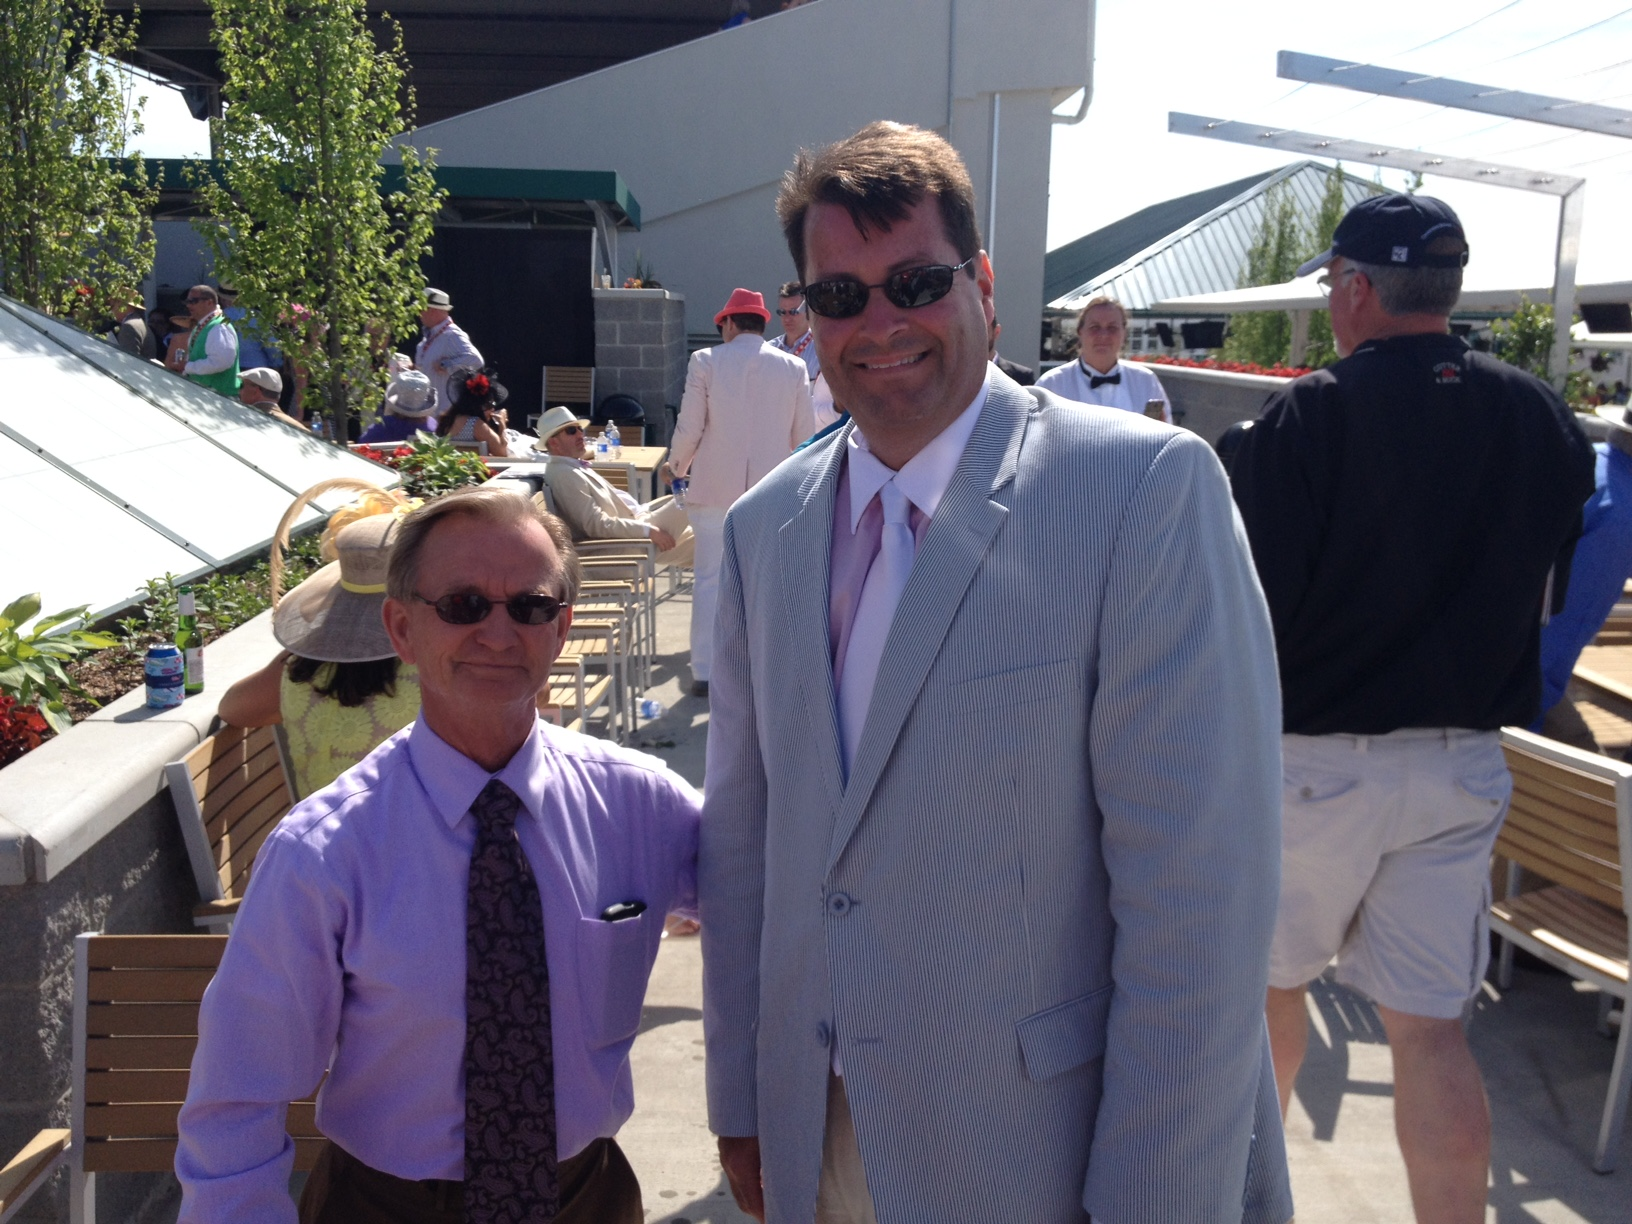 with jockey  Pat Day , who has ridden at least three Kentucky Derby winners and is the all time leading jockey at Churchill Downs. He is also active in the Jockey Chaplain service.